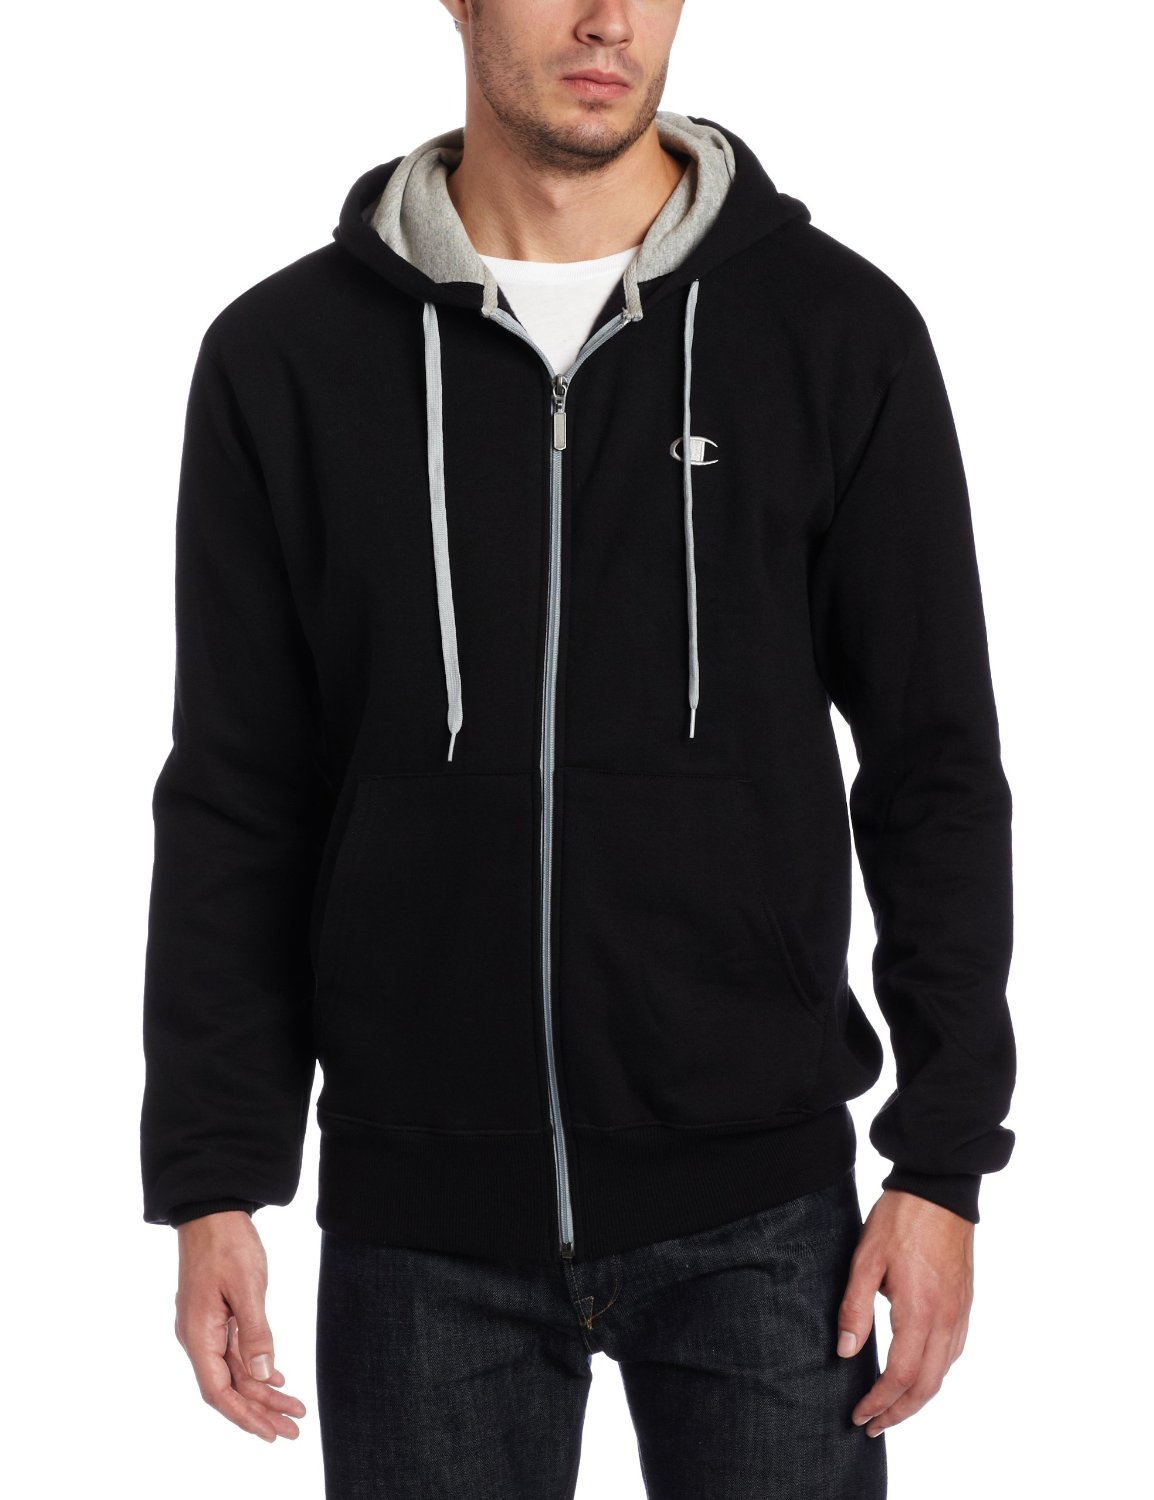 Zipped hoodies